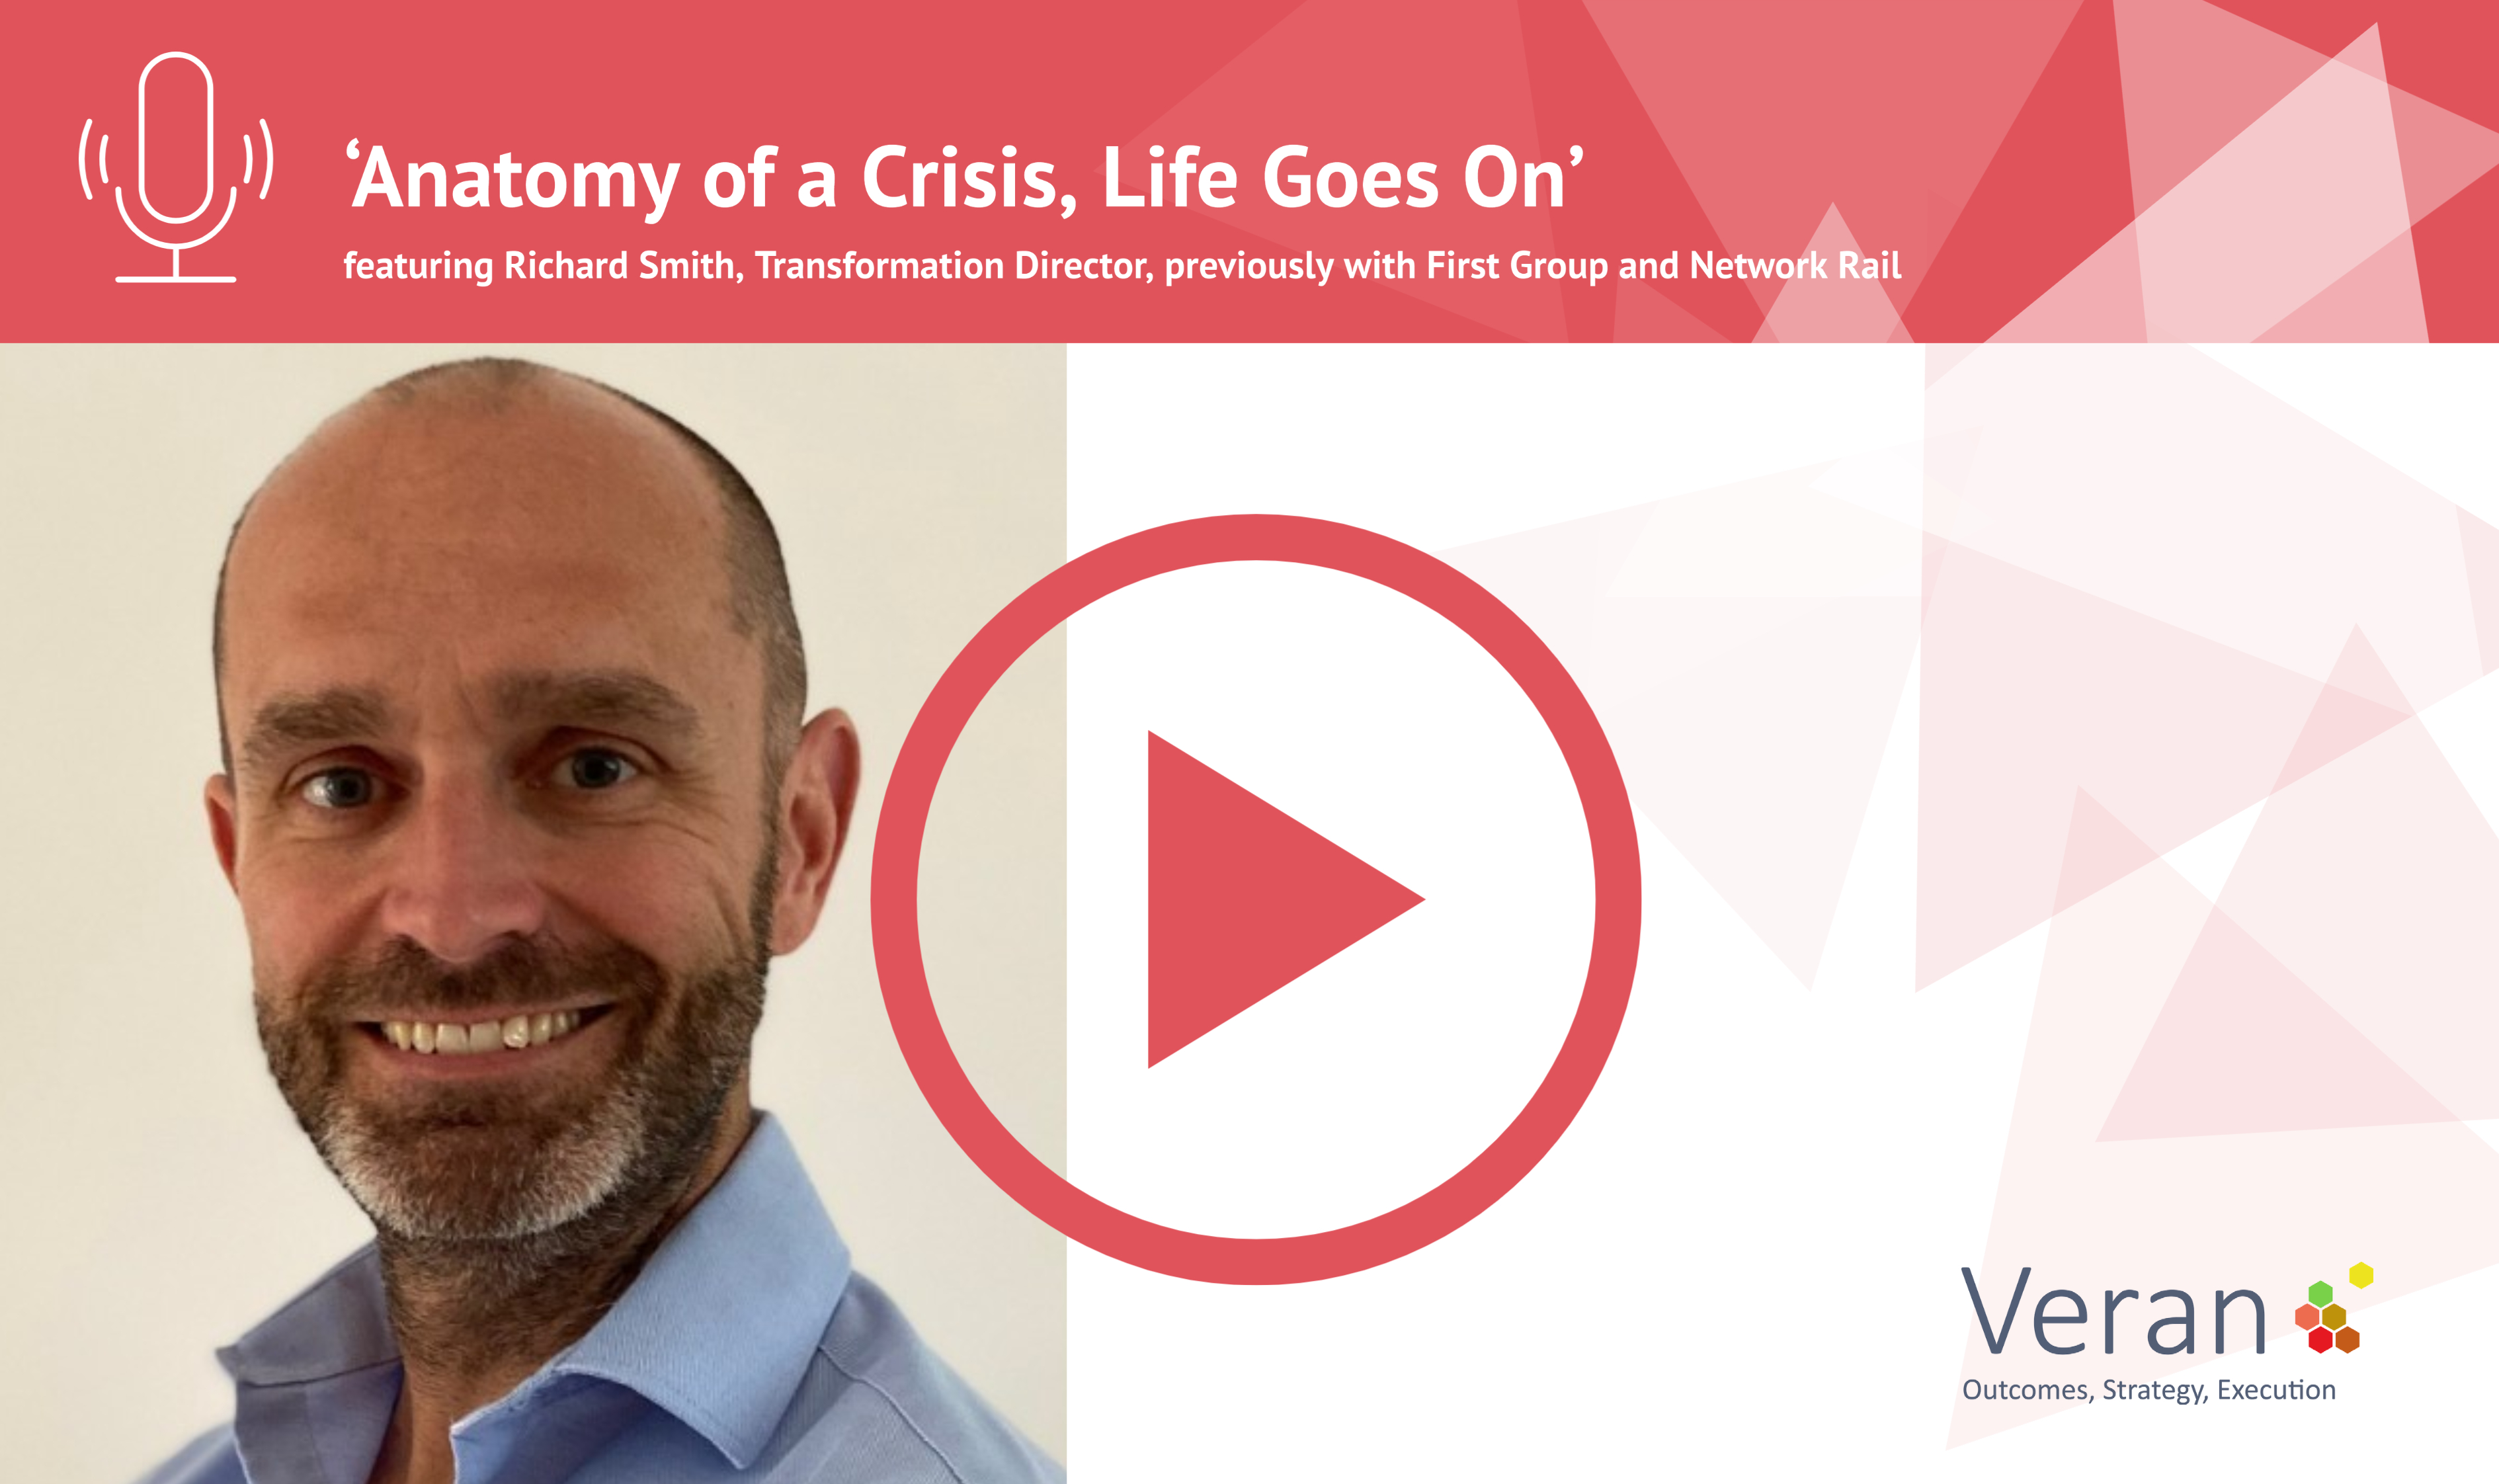 Anatomy of a Crisis, Life Goes On with Richard Smith, Transformation Director, previously with First